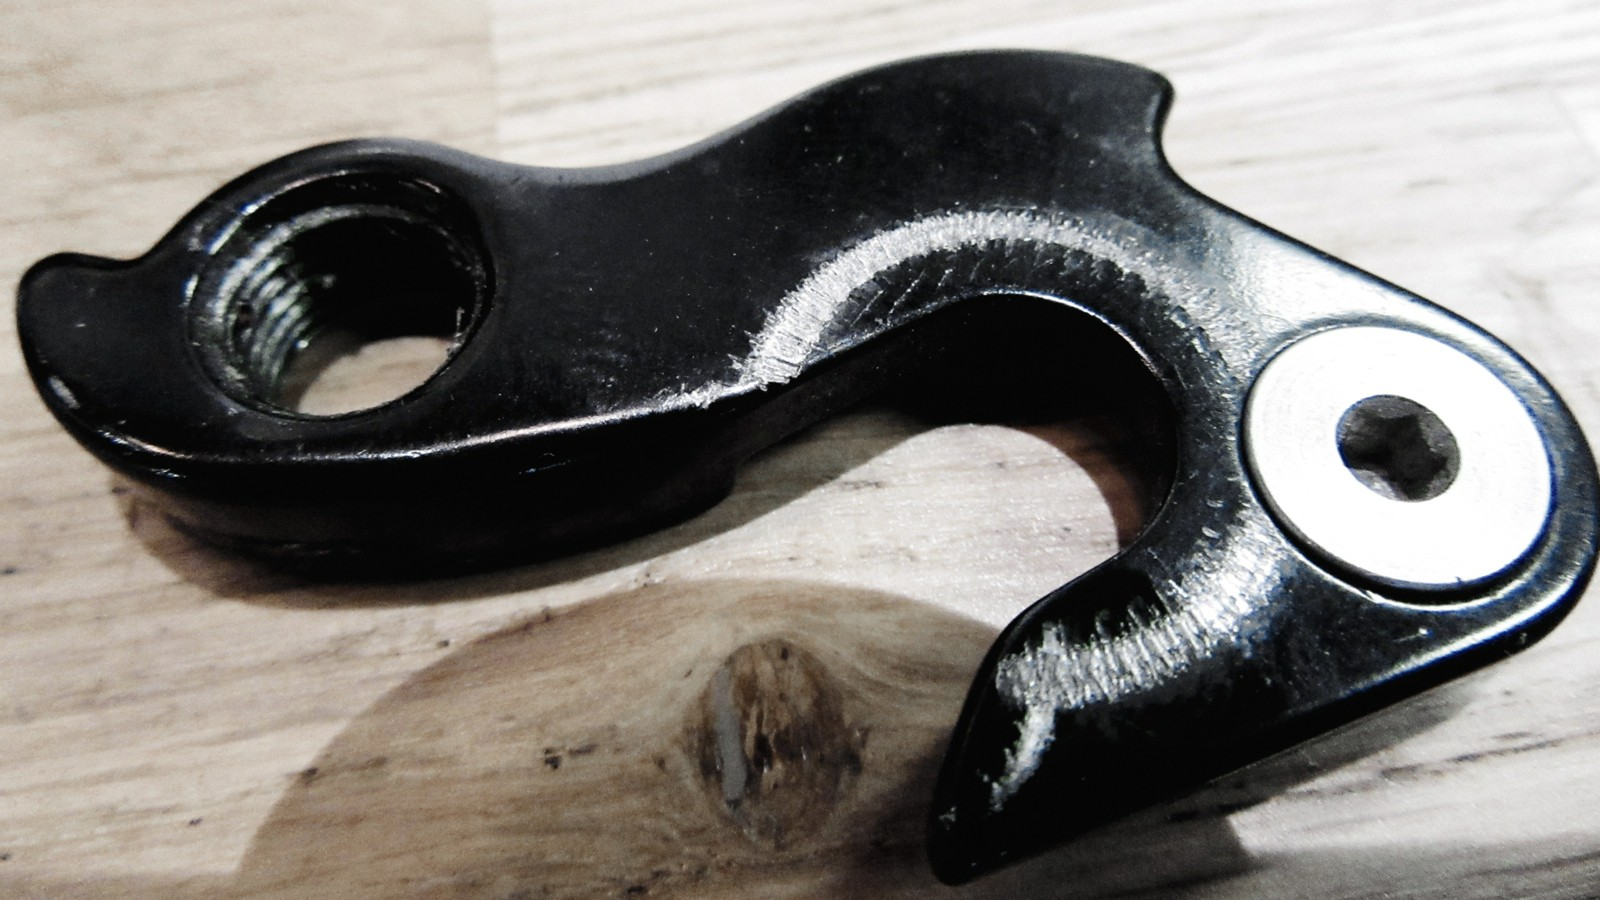 A derailleur hanger isn't heavy or costly. Having a spare on you for a long race day can make a world of difference